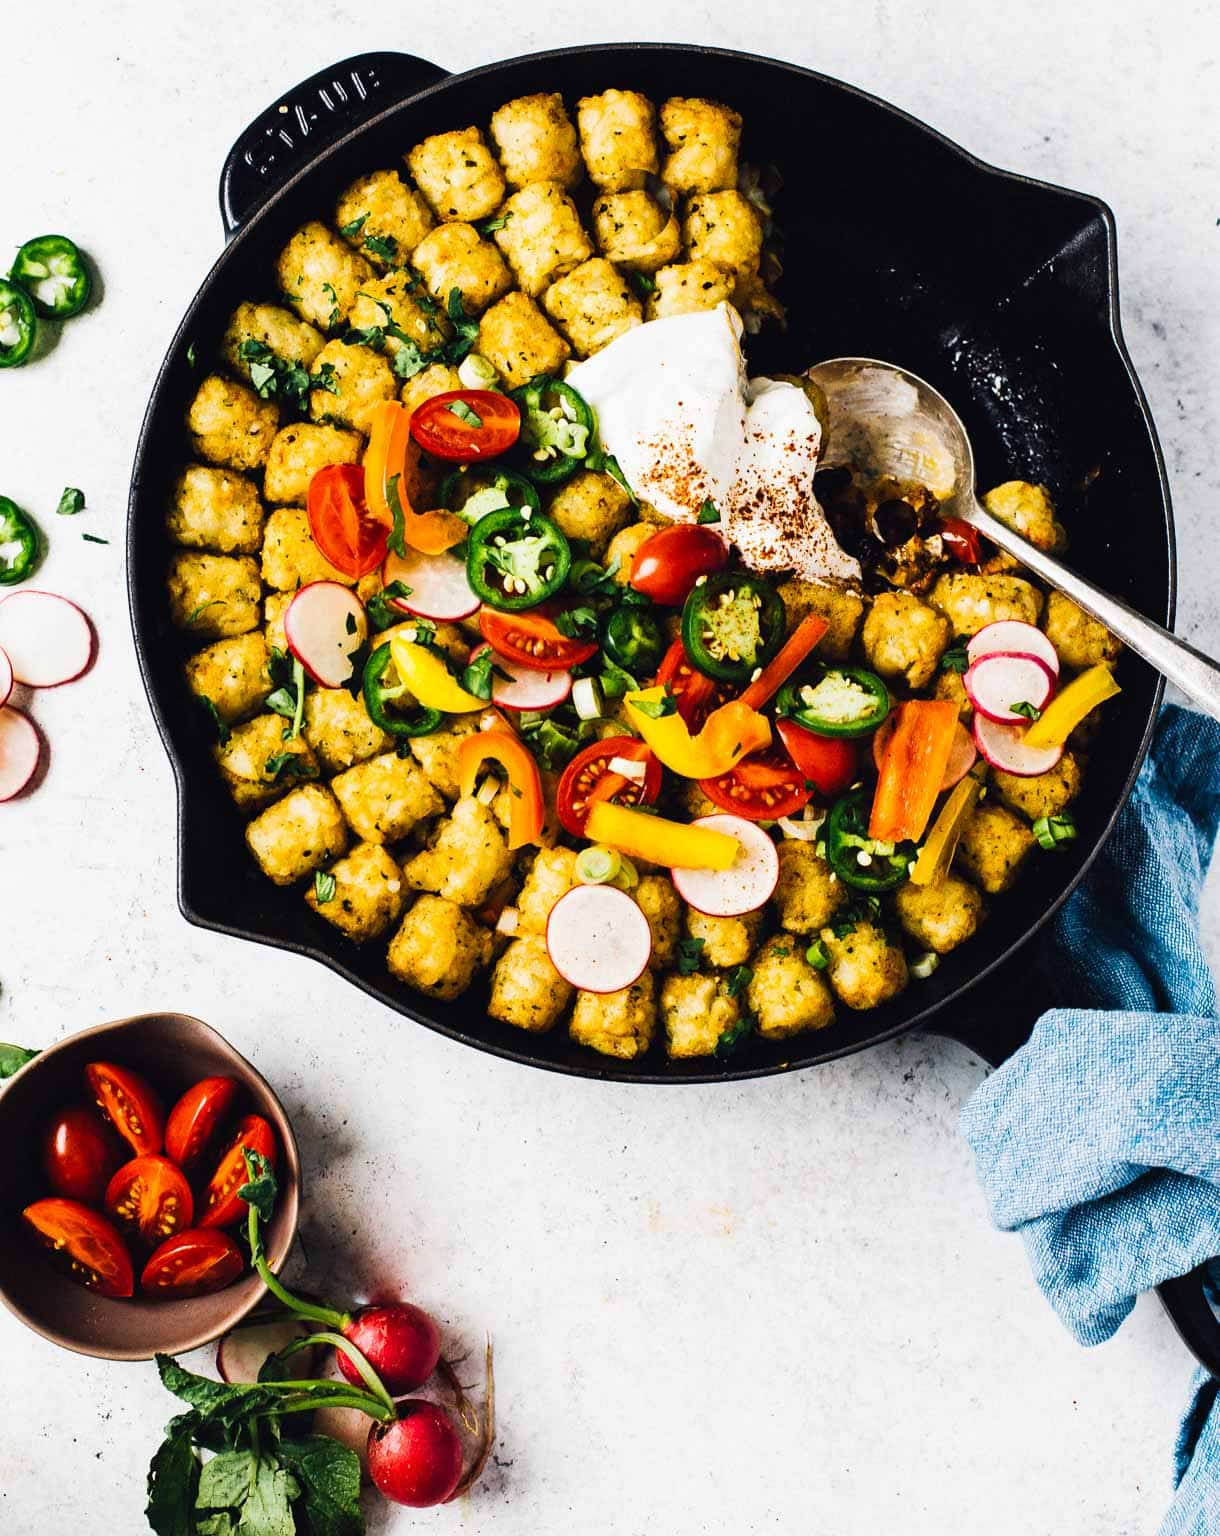 spoonful removed from taco tater tot hotdish in a cast iron skillet